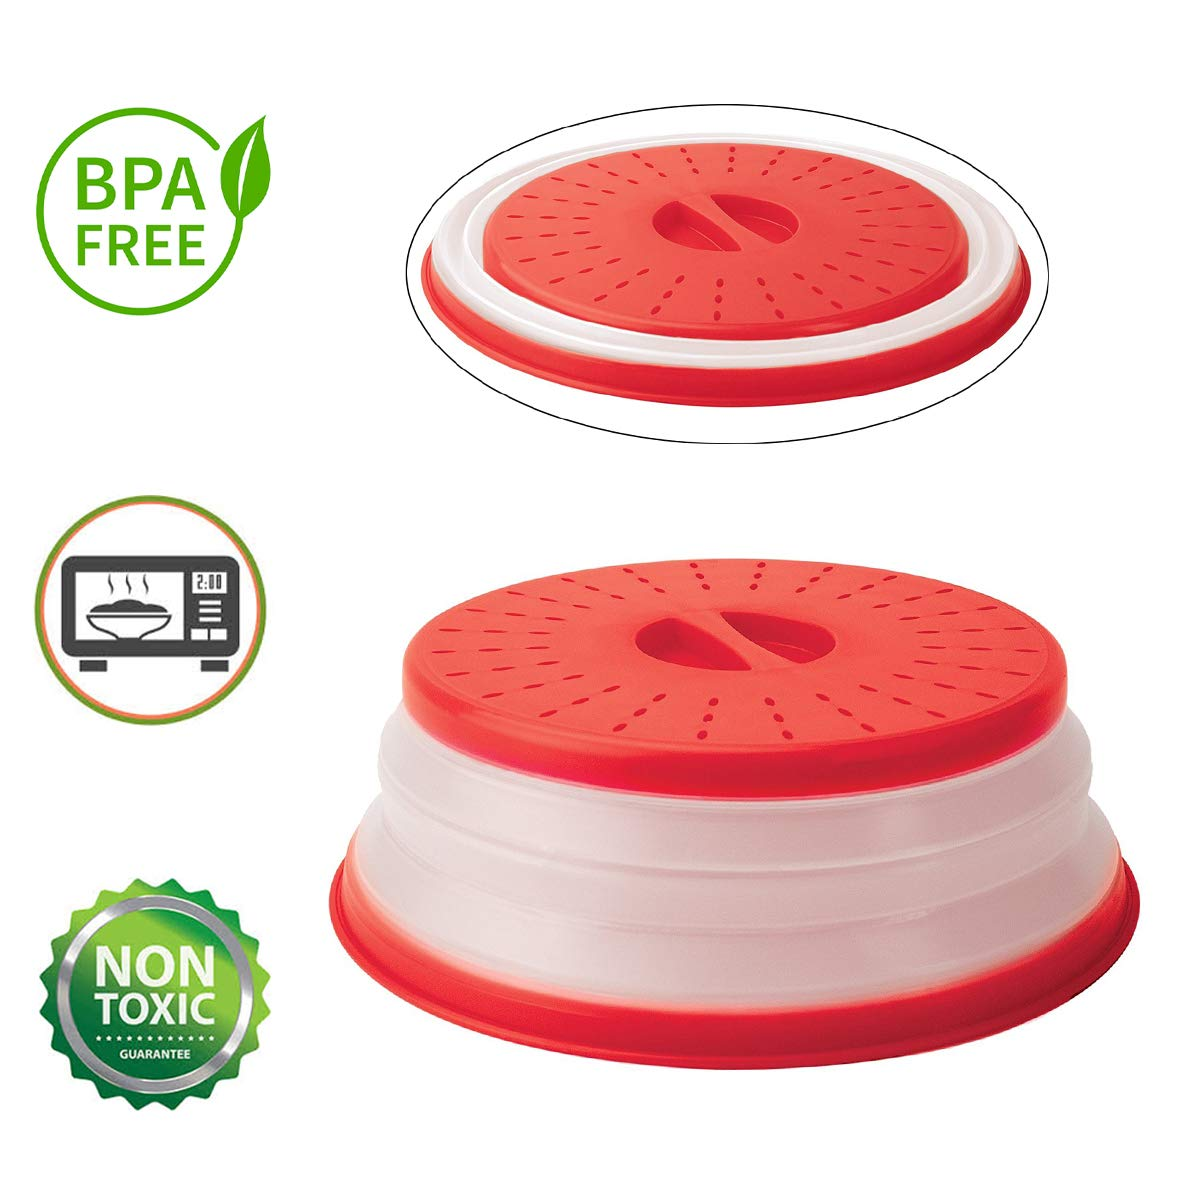 "ANTEER Microwave Plate Cover 10.5"" Collapsible Food Plate Lid Cover - BPA Free, Easy Grip, Microwave Plate Guard Lid with Steam Vent & Colander Strainer for Fruit  (Red)"